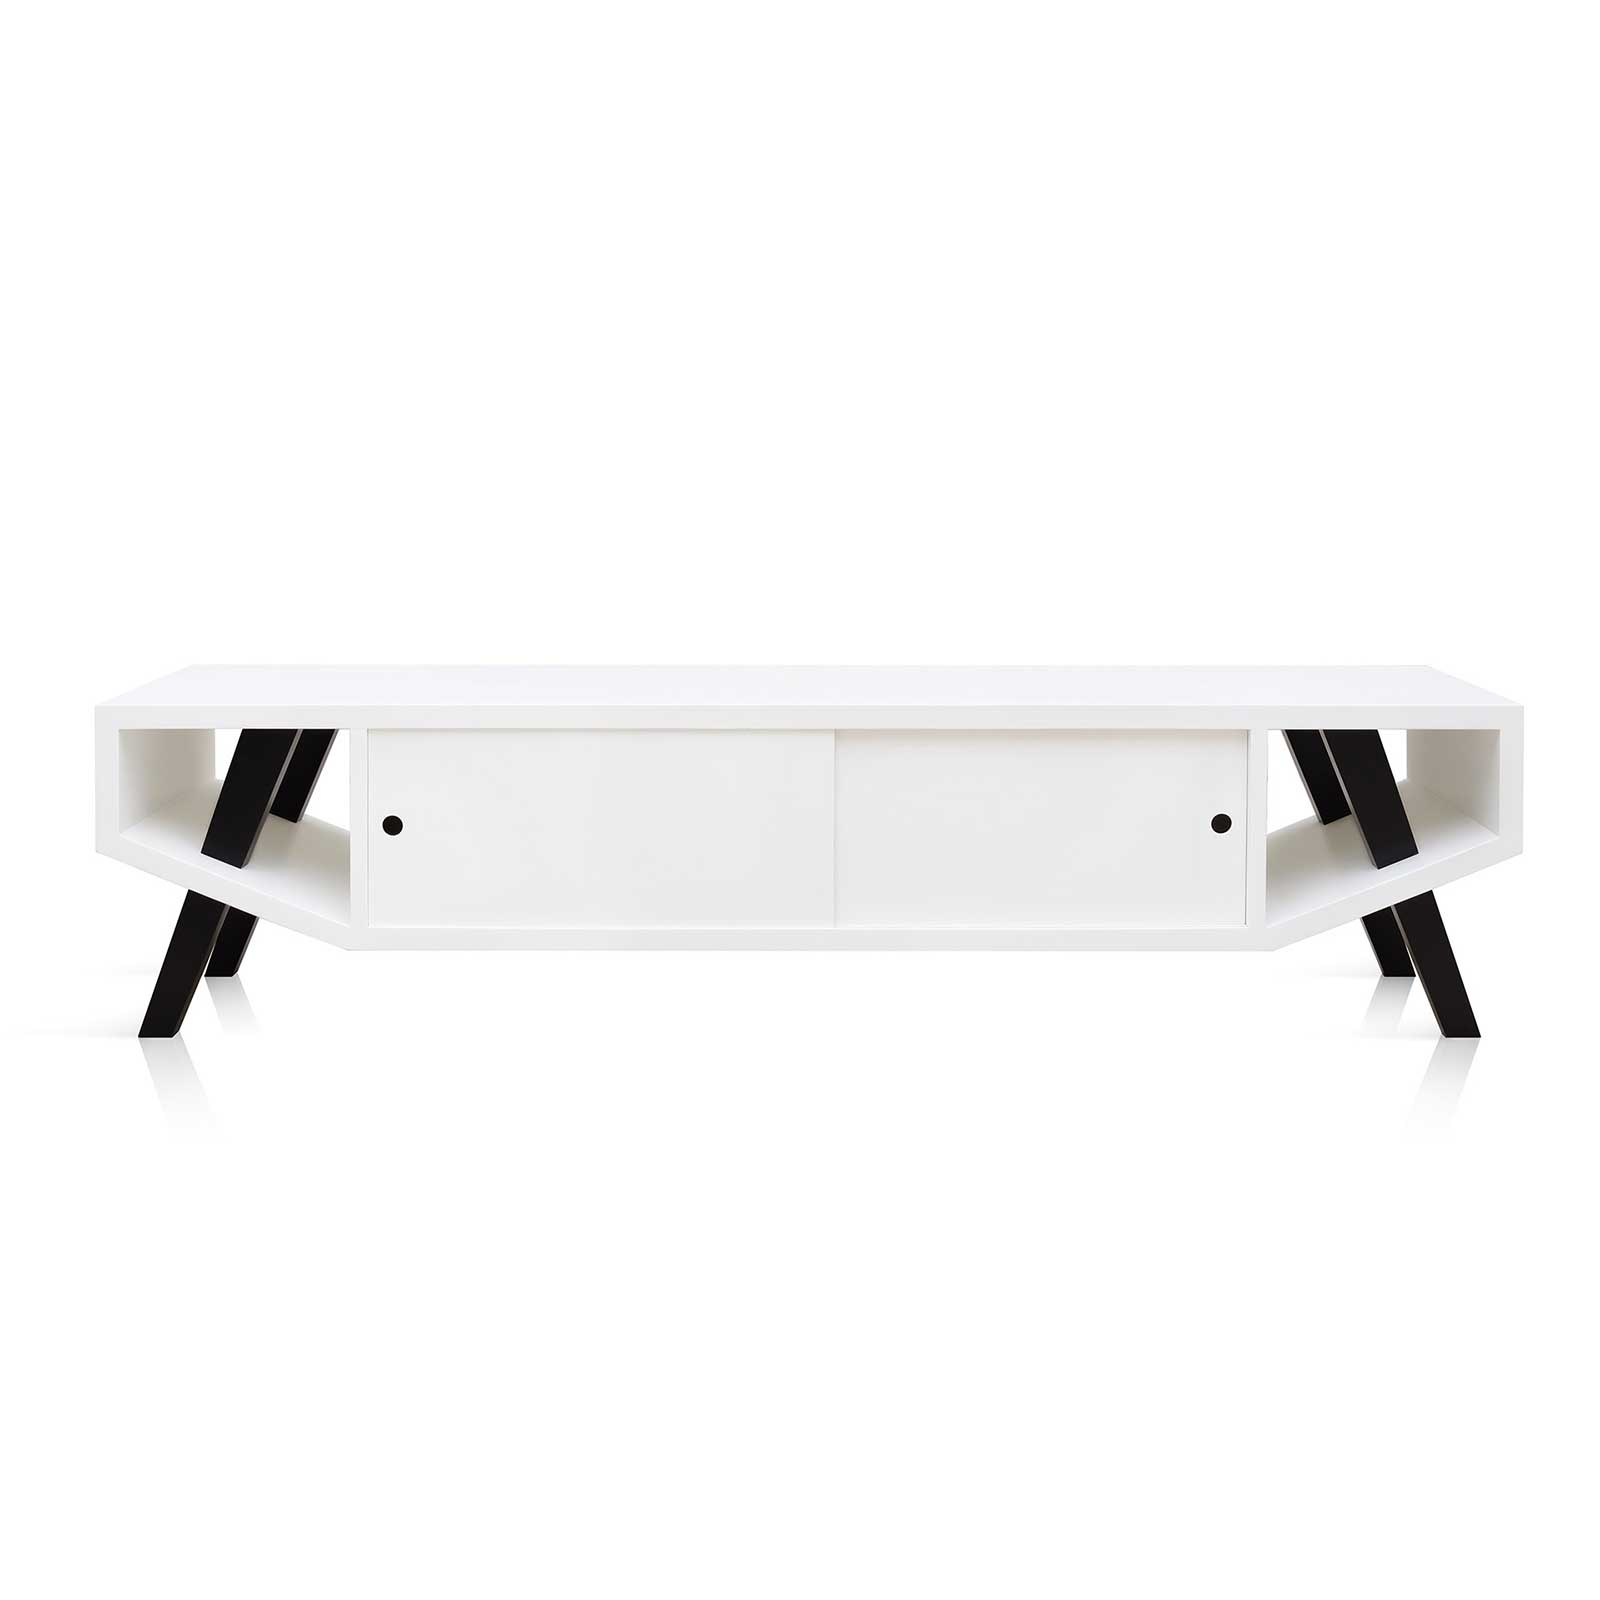 NU-O Eden TV UNIT 01 in White and Black